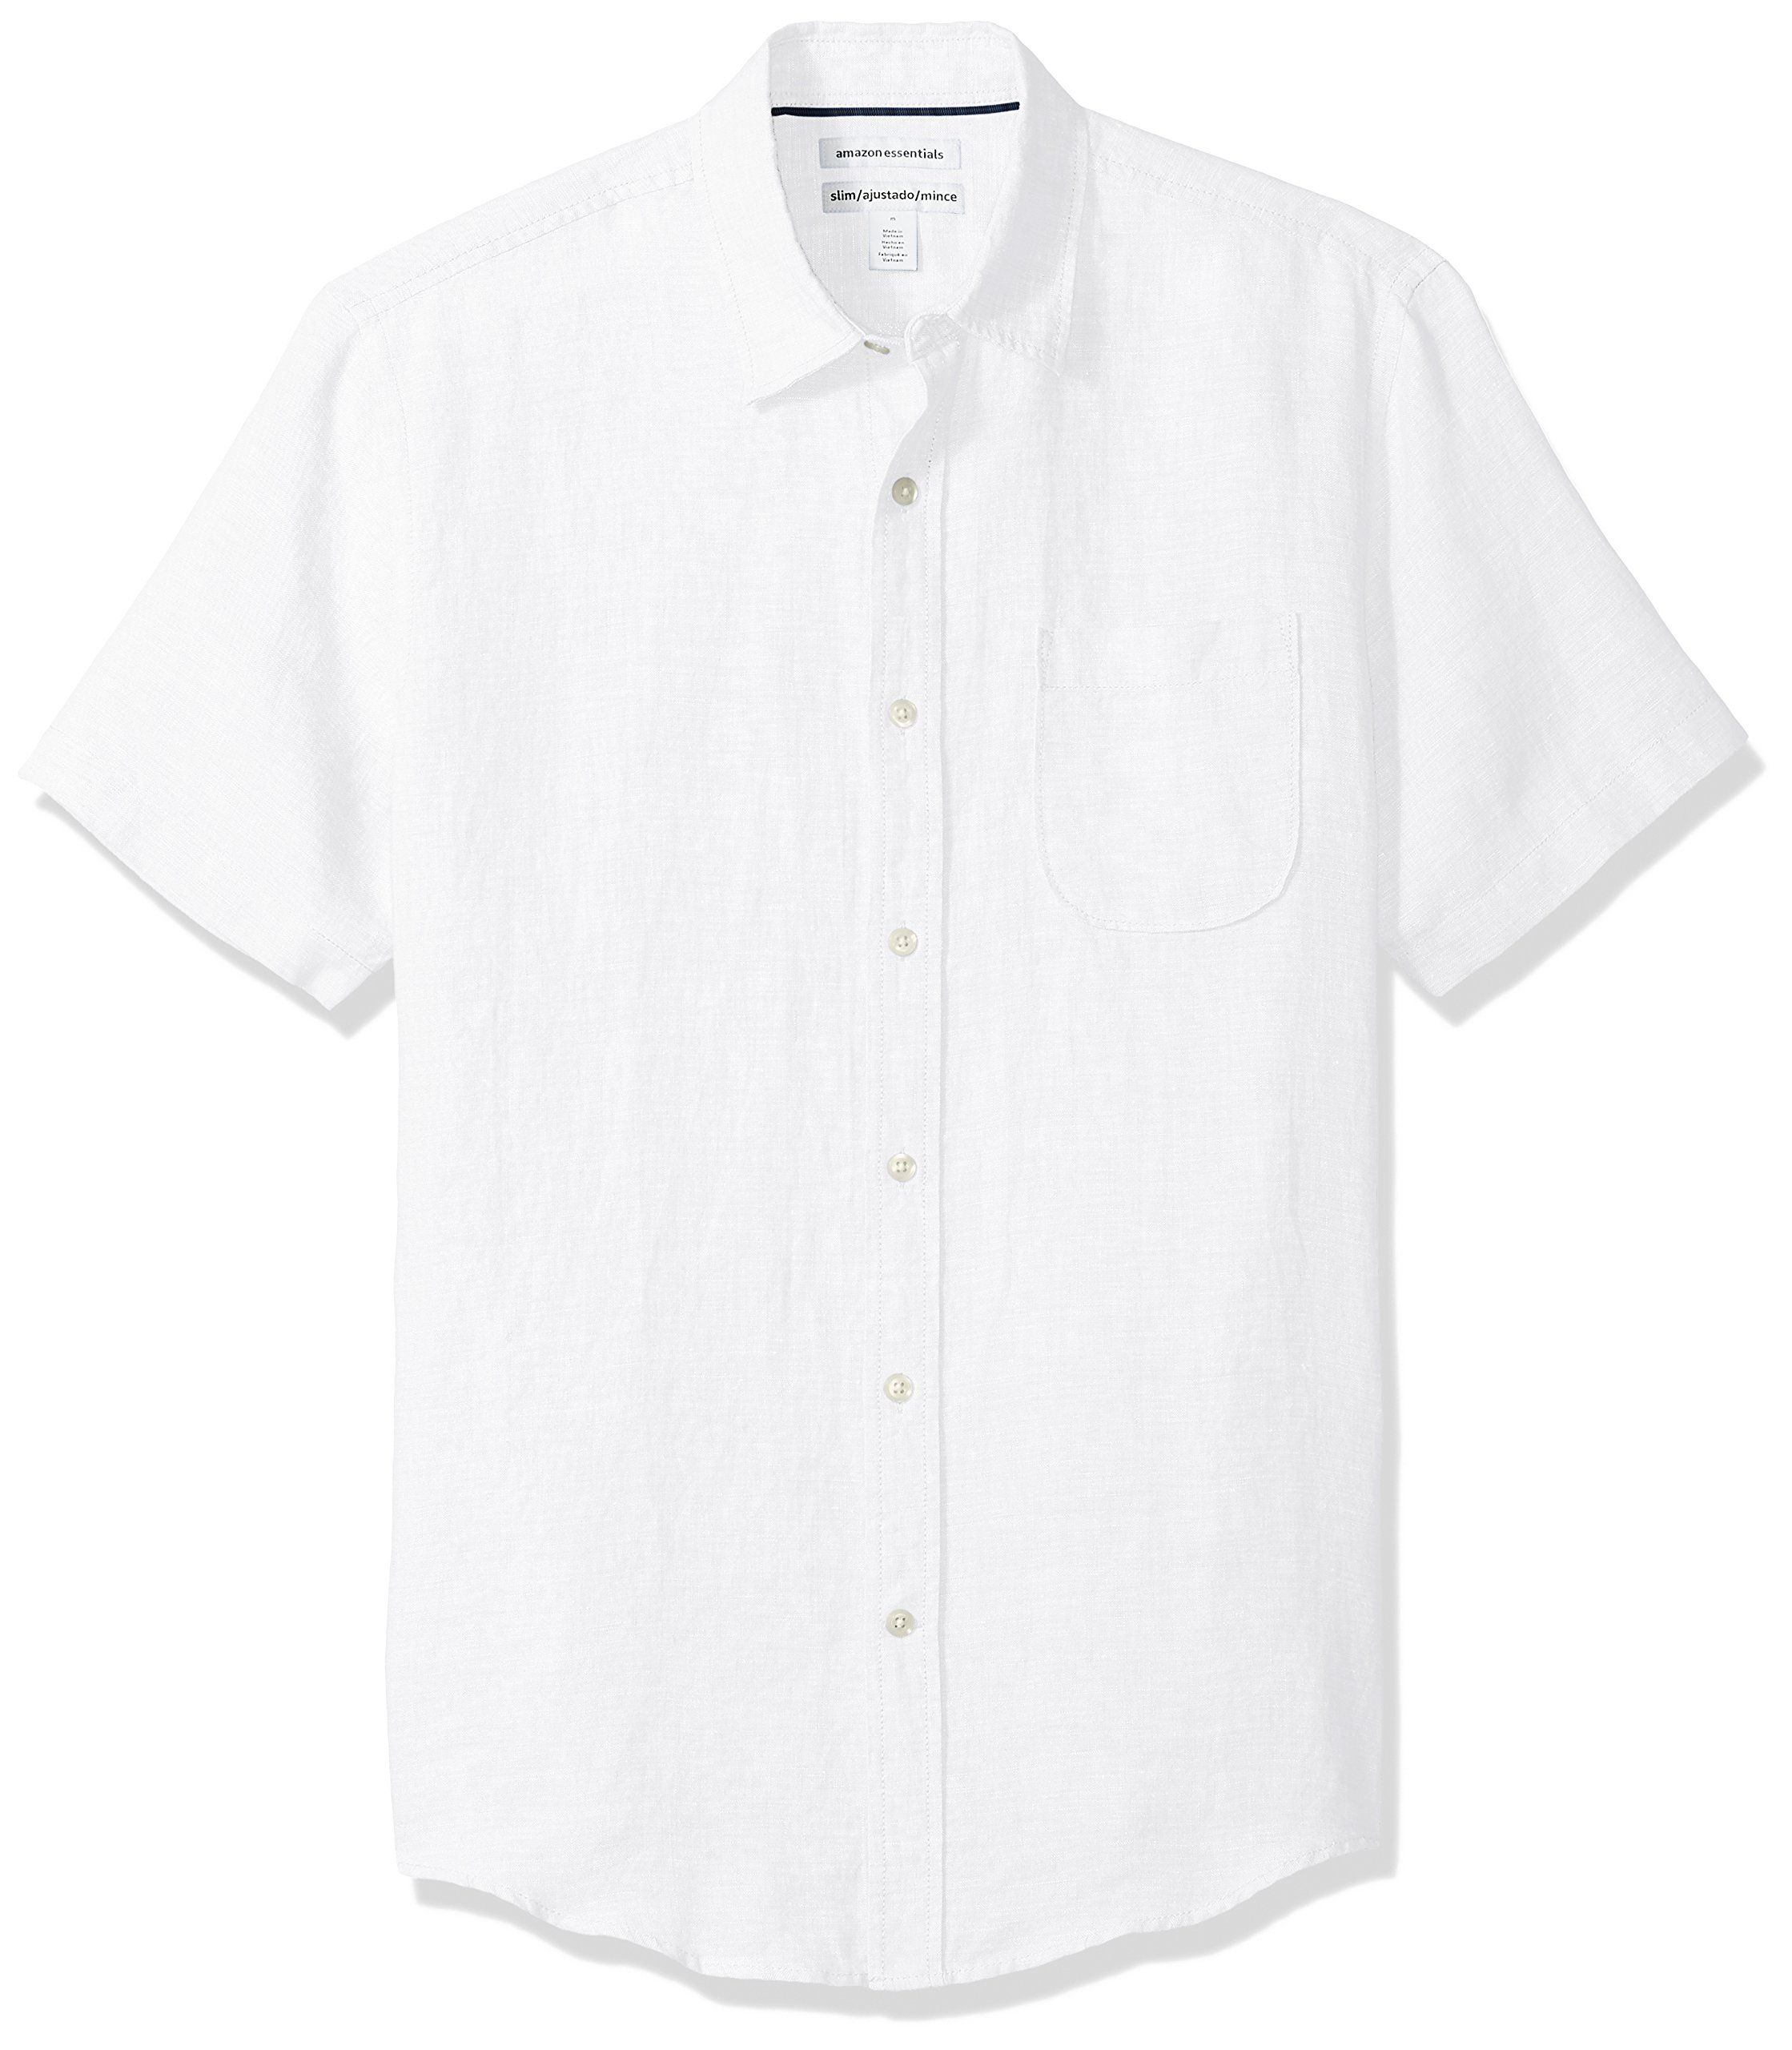 Amazon Essentials Men's Slim-Fit Short-Sleeve Linen Shirt, White, Large by Amazon Essentials